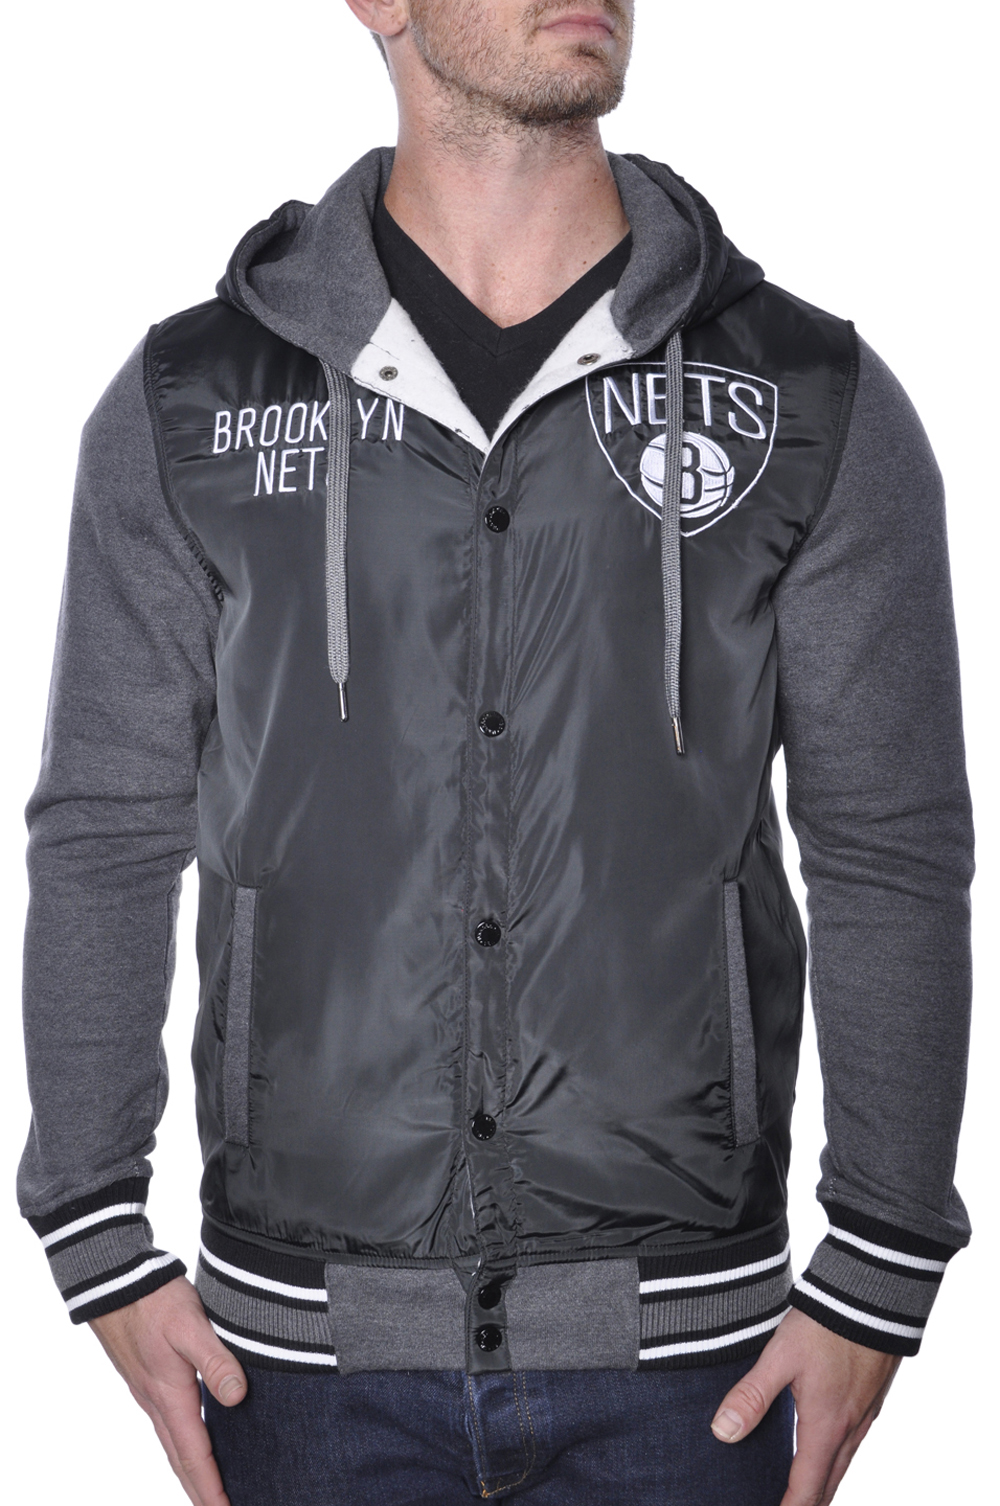 Brooklyn Nets Varsity Jacket Mens Basketball Hoodie Licensed NBA by OFFICIAL LICENSED NBA